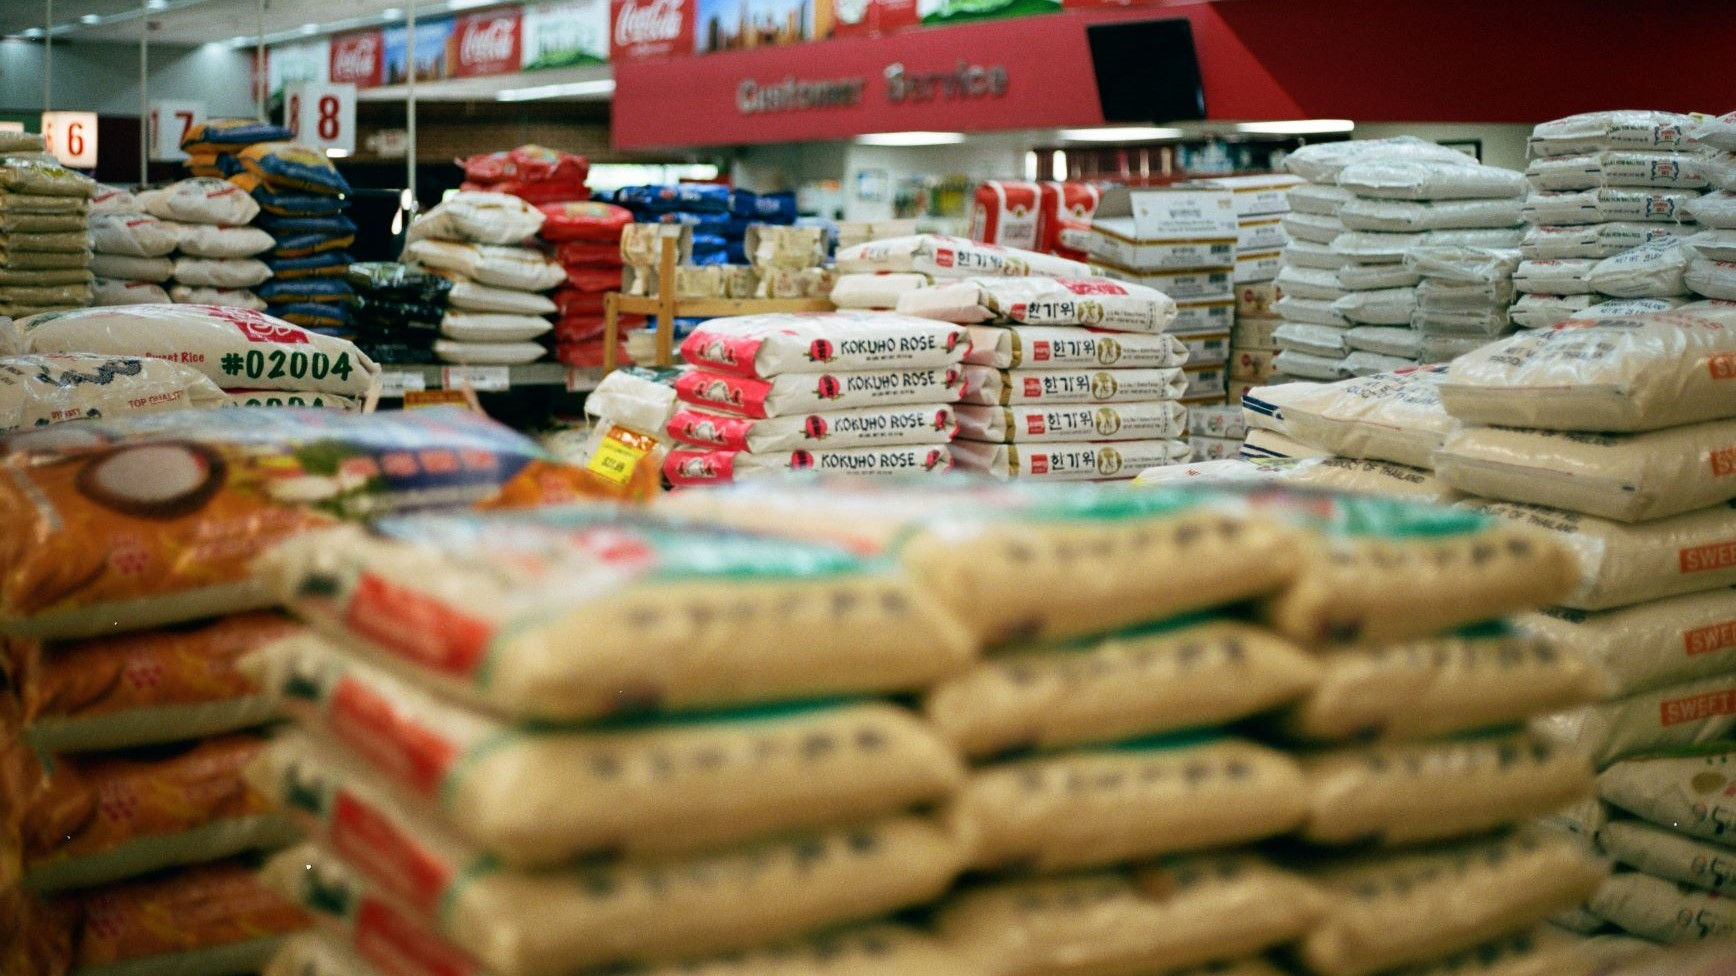 Commodity food prices boil to a 10-year peak in May, echoing the Arab Spring